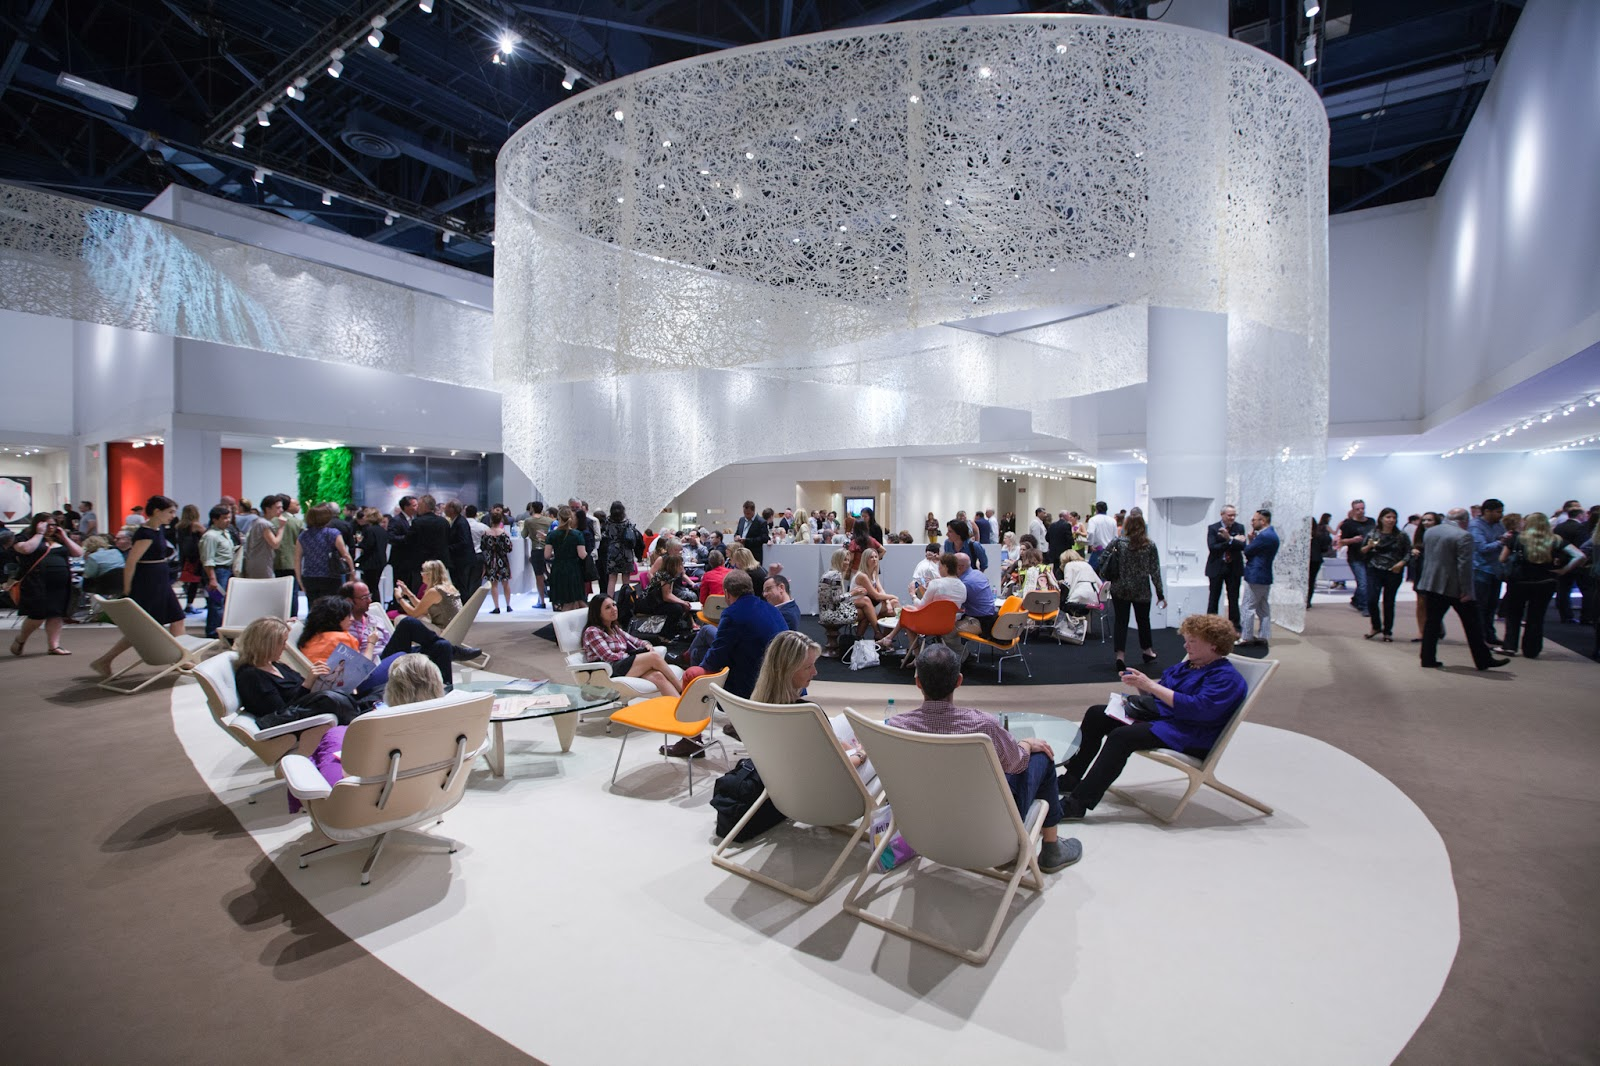 people sitting in chairs at art basel miami  5a0a100ddf75c